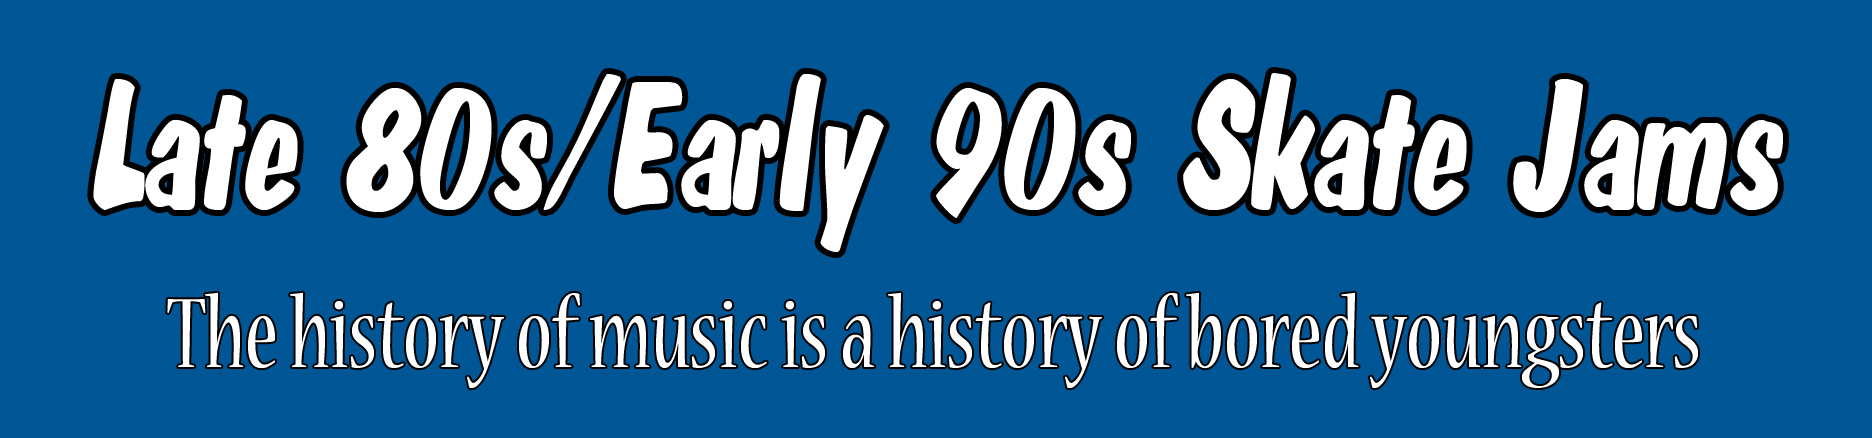 HED - Late 80s early 90s outline.jpg